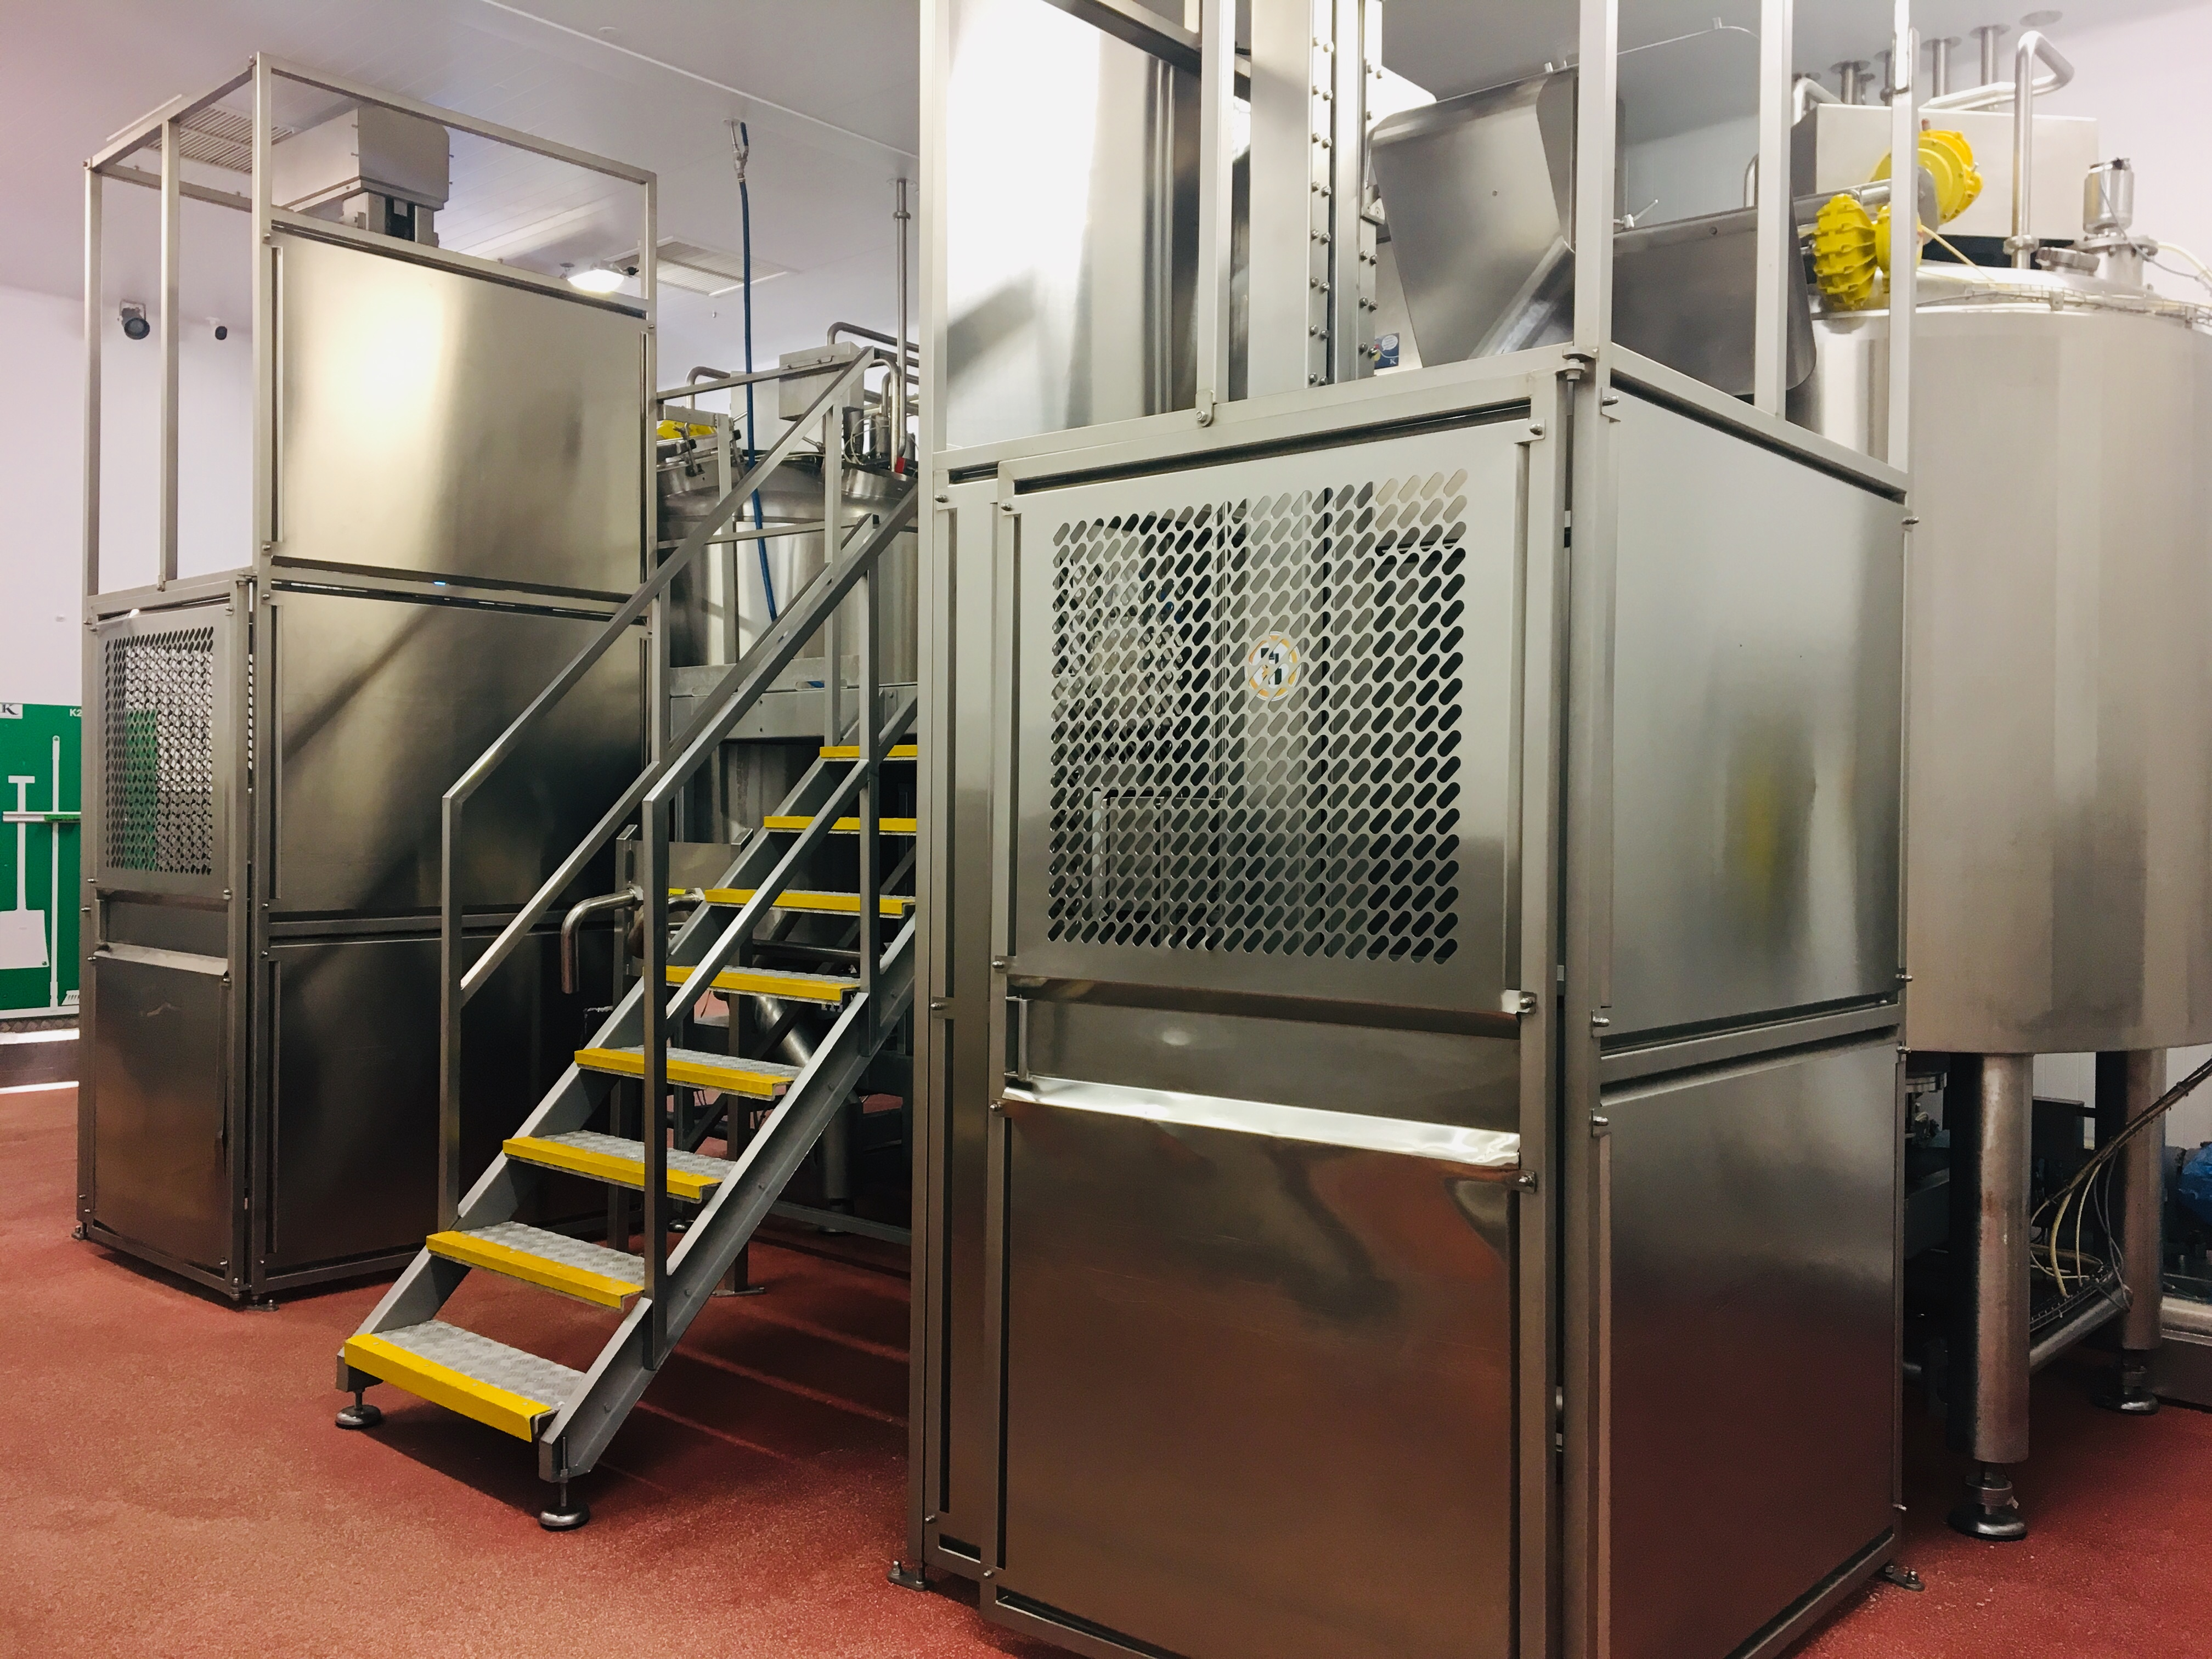 Lot 150 - Scanima Twin Vat Cooking Station Comprising: 2 x SPM 2700 jacketed pressurised cooking vats,